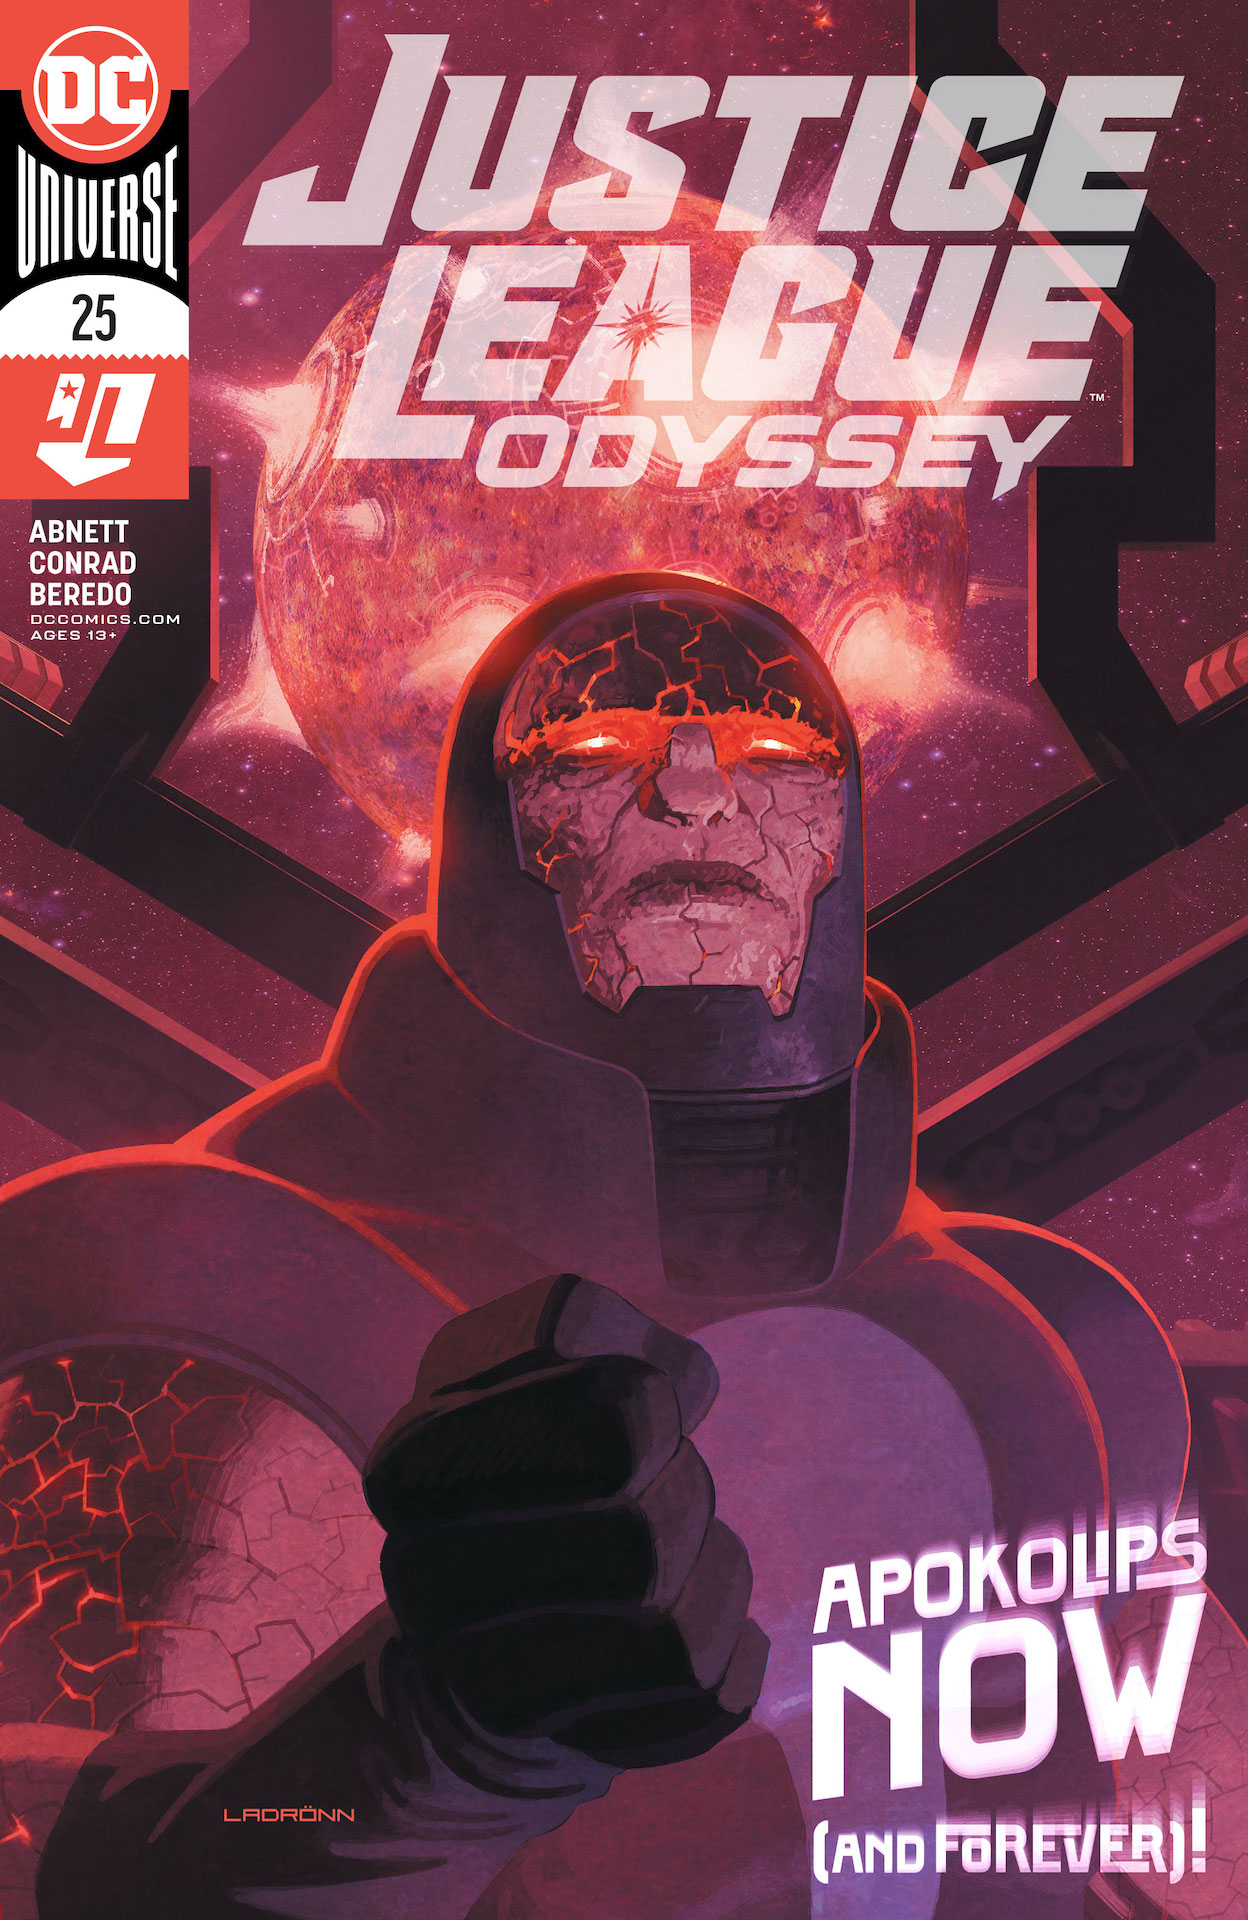 DC Preview: Justice League Odyssey #25